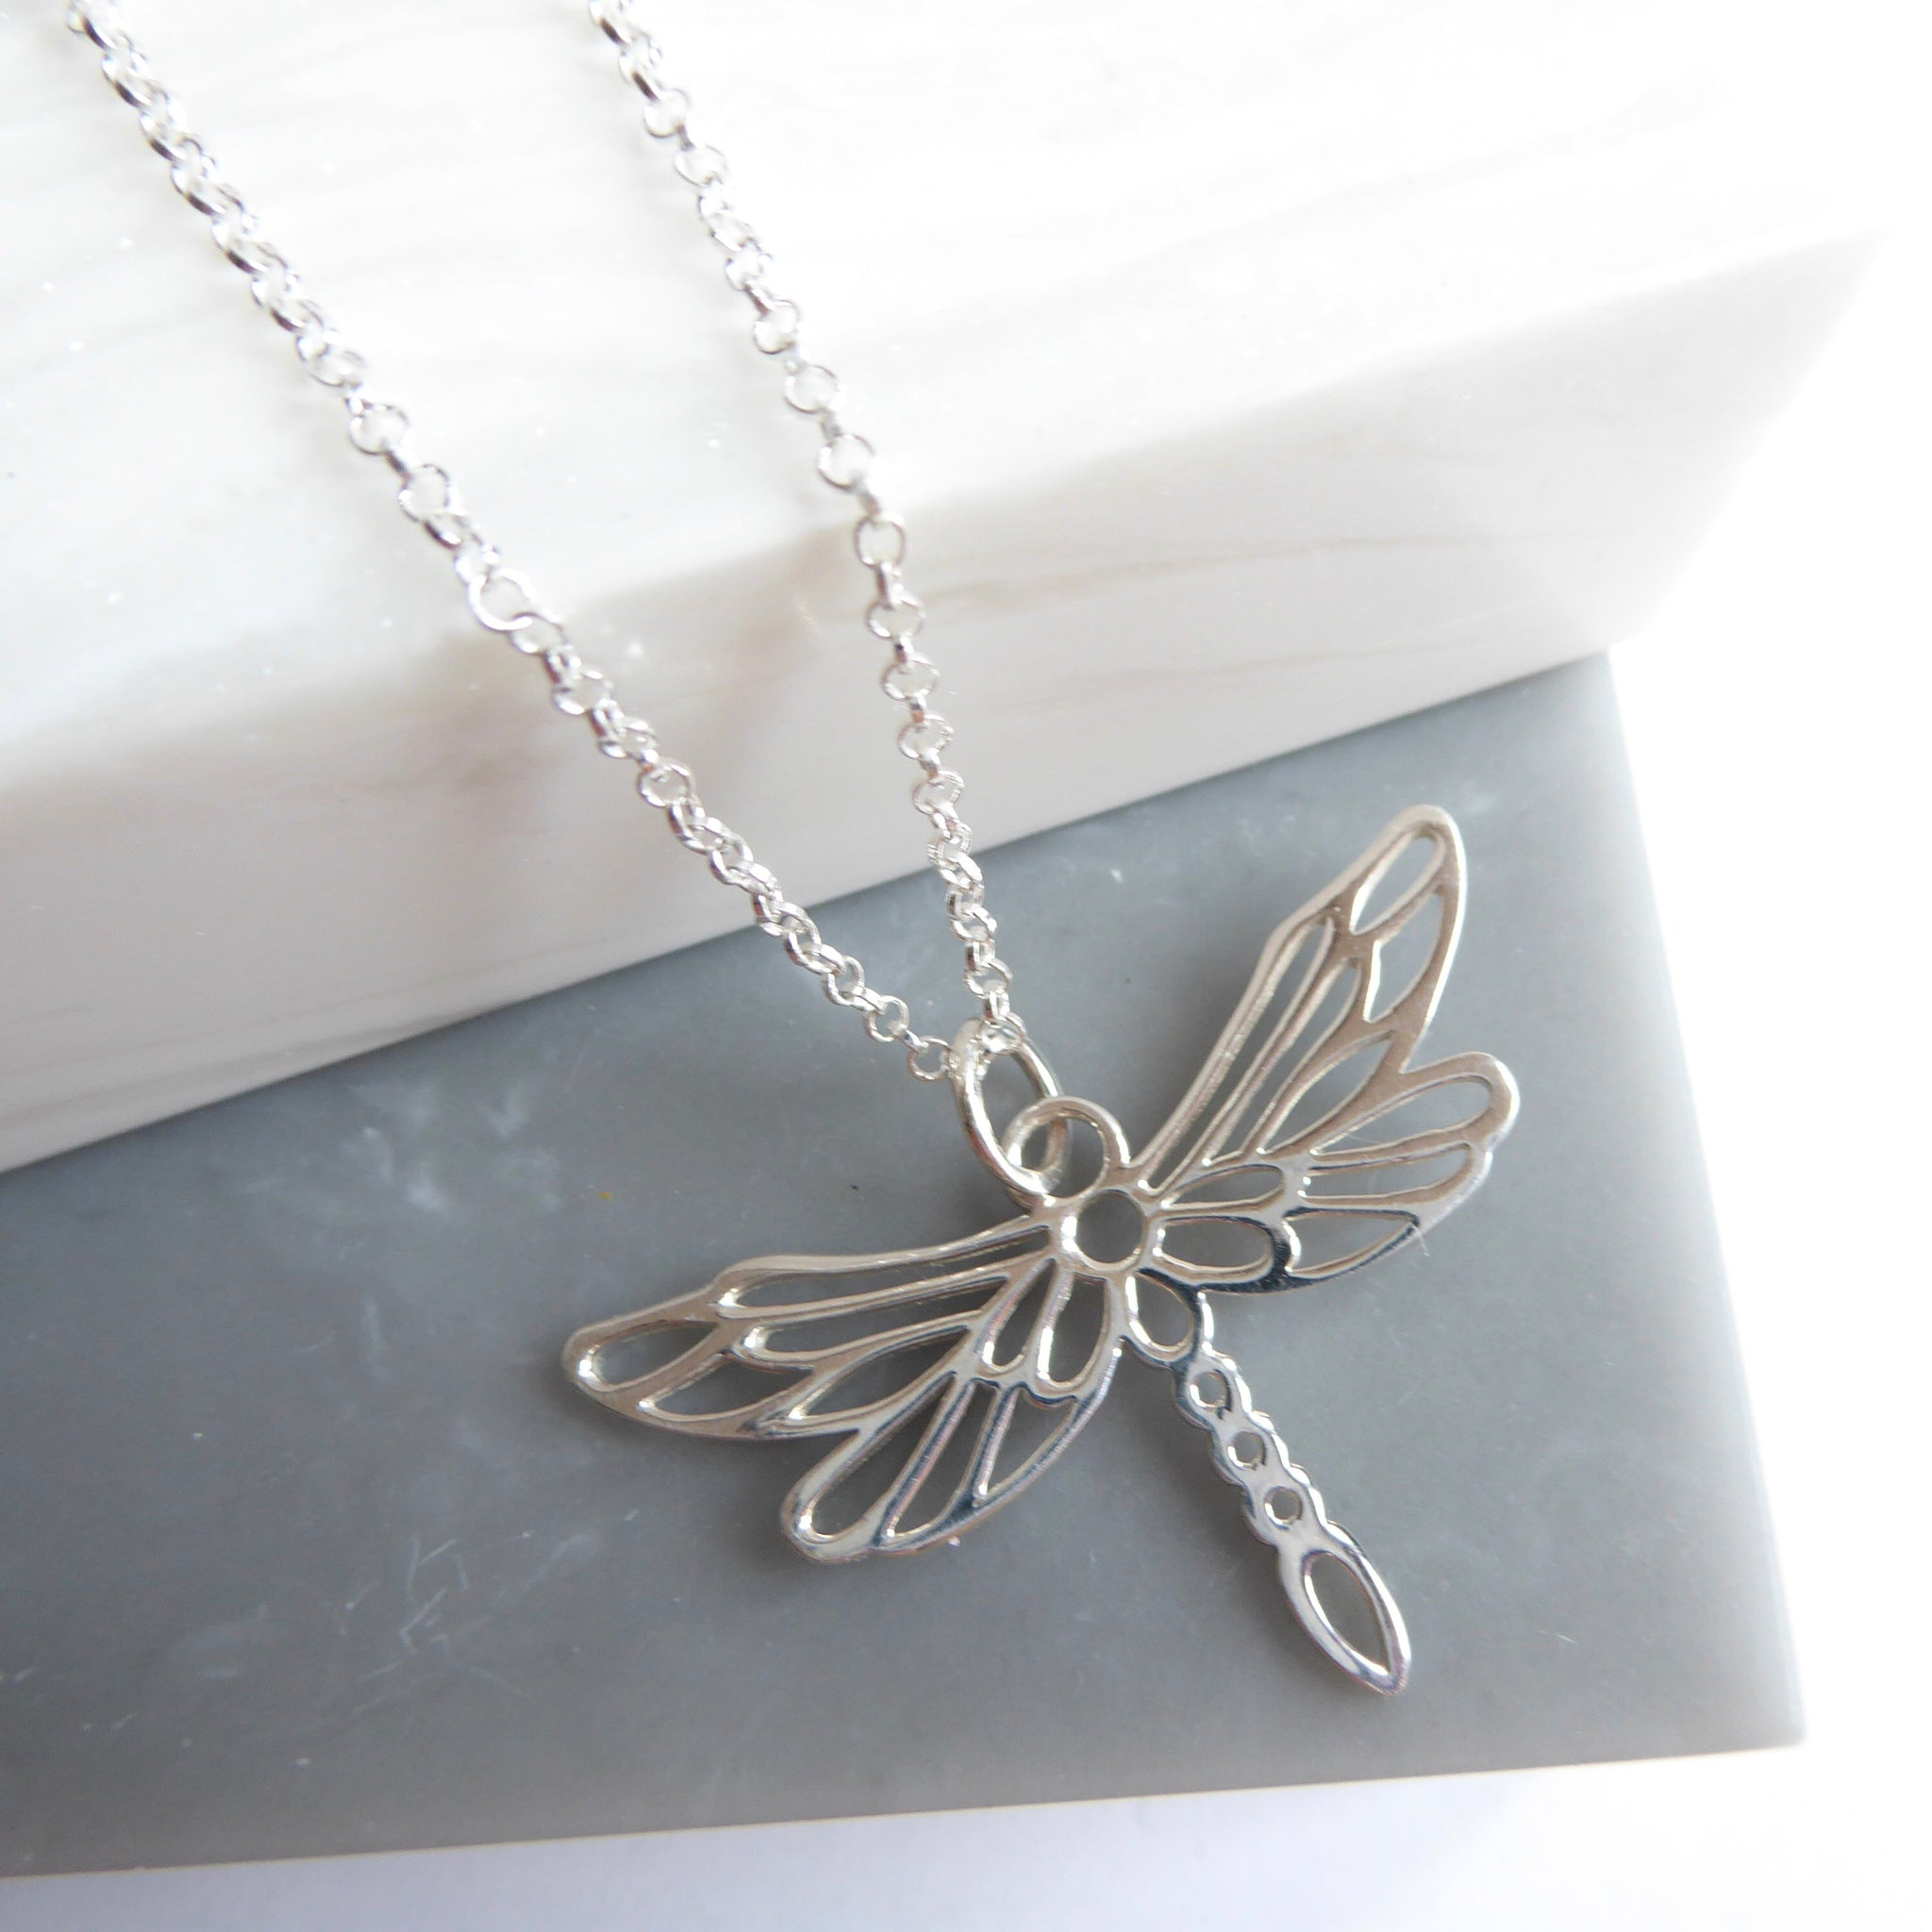 necklace pendant dream style products vintage dragonfly antique speakthename of copy